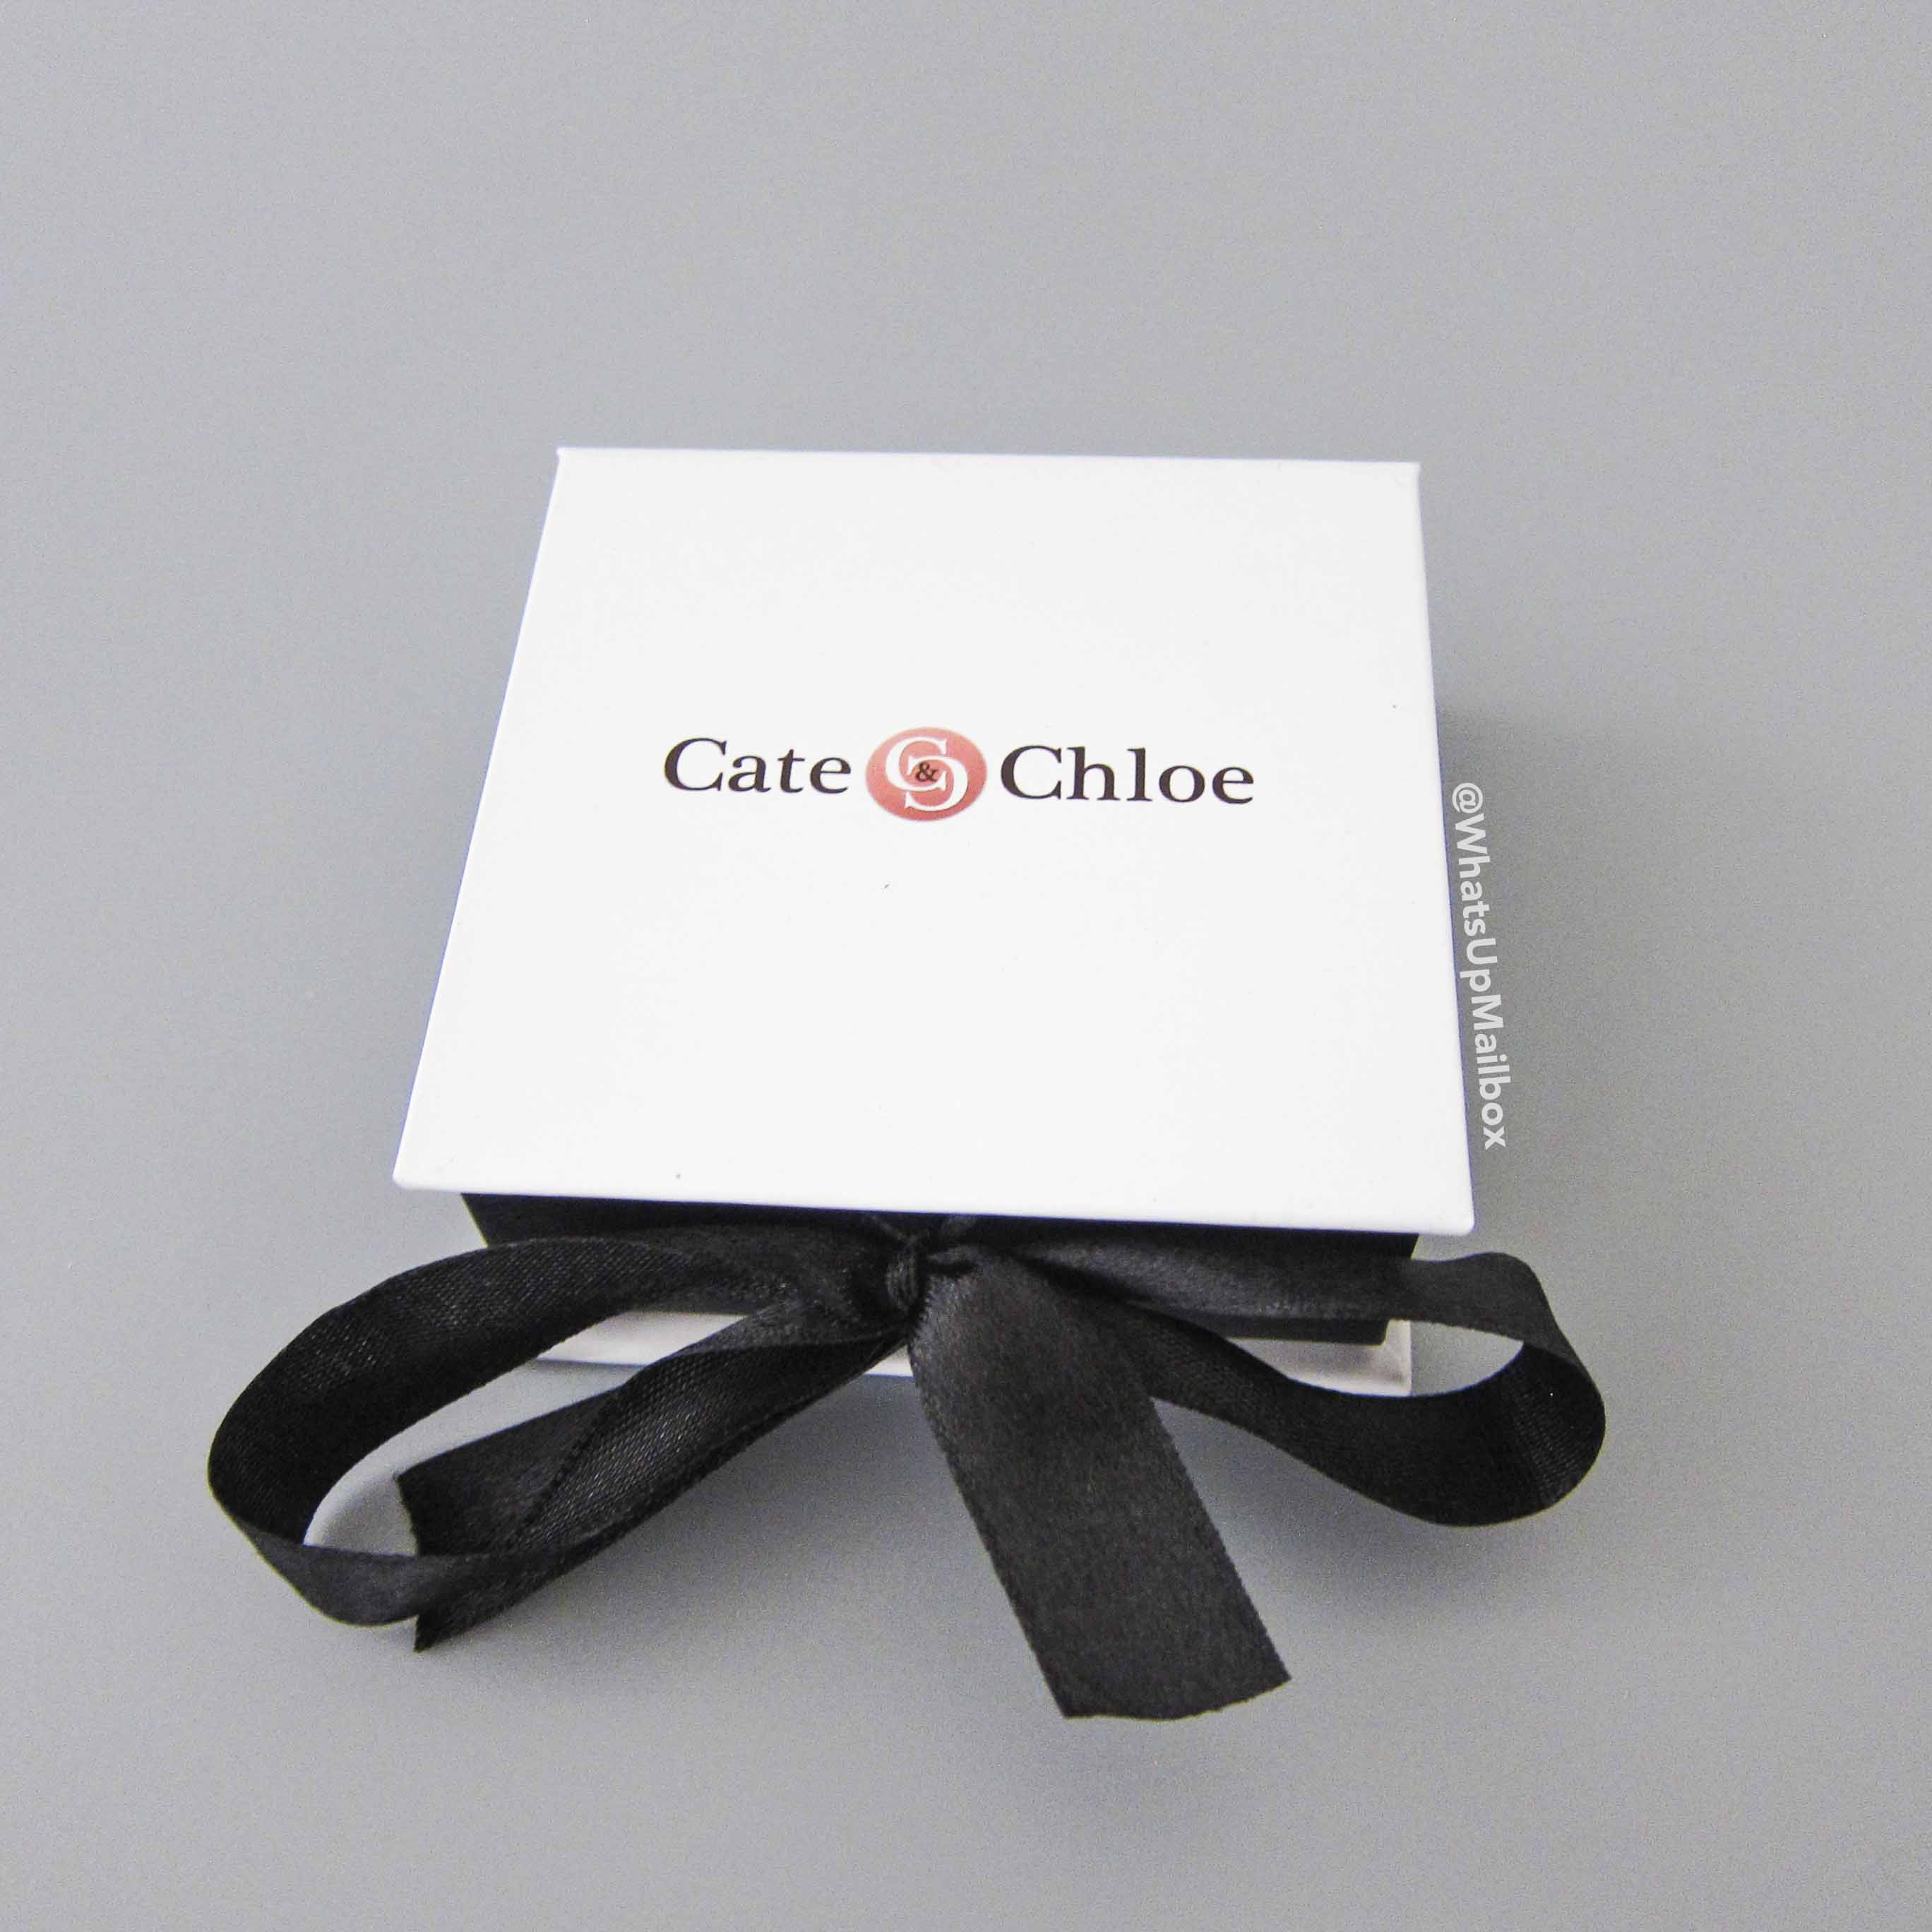 Cate & Chloe VIP September 2016 Jewelry Boxes